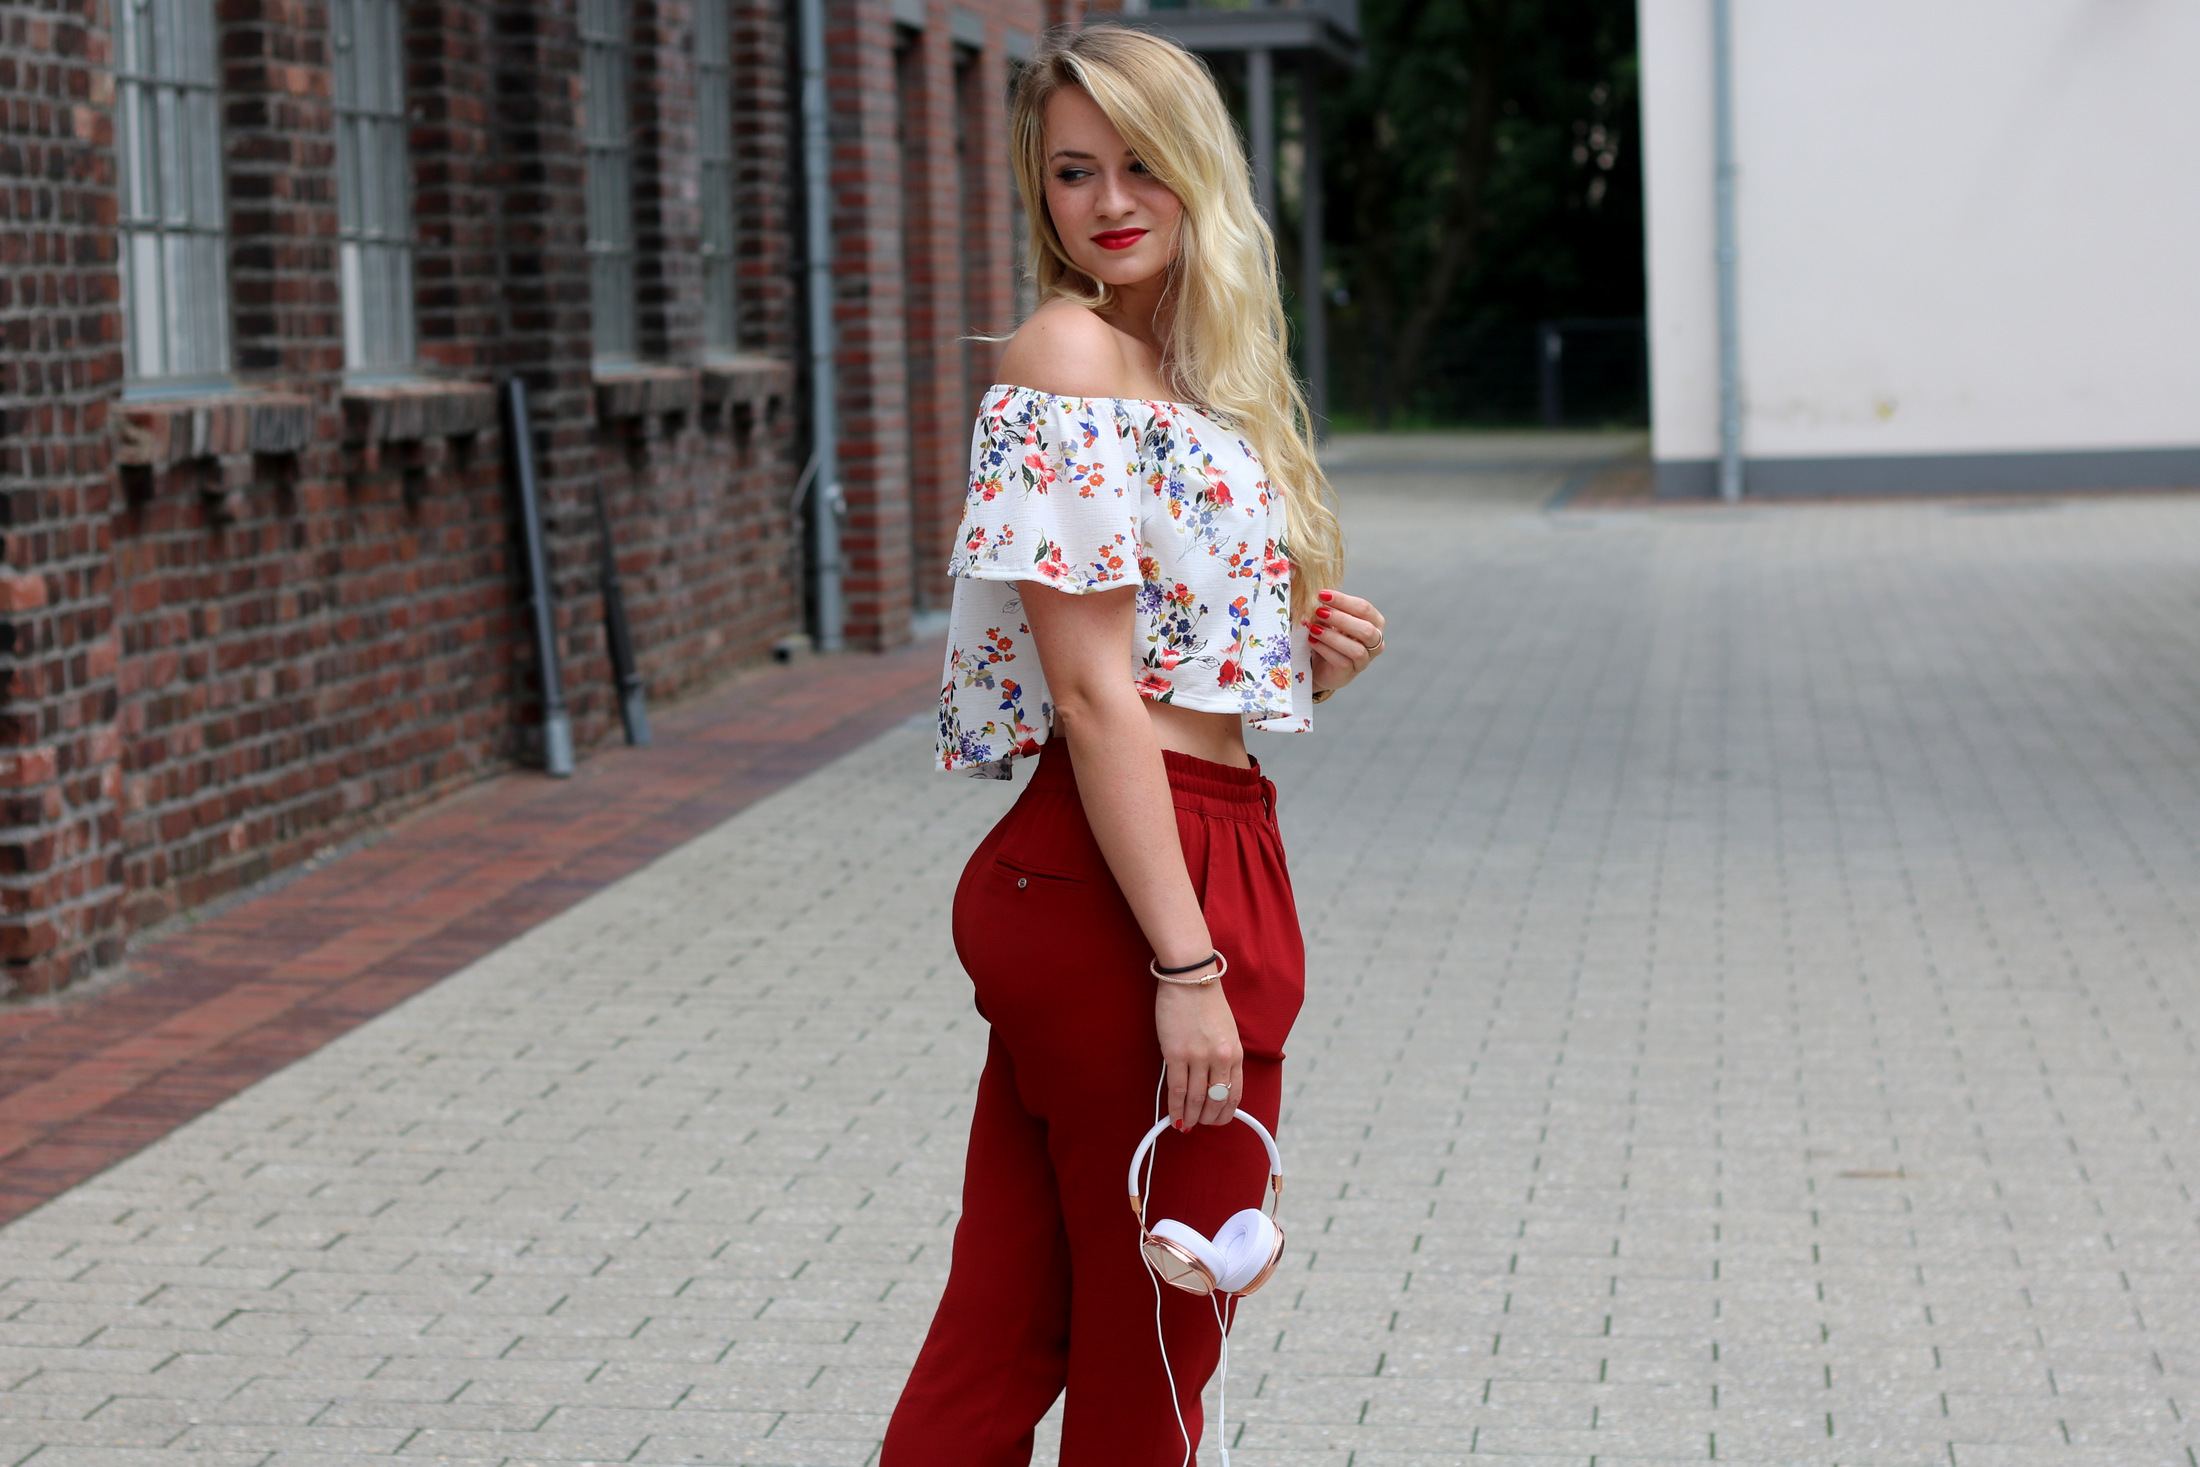 frends-headphones-kopfhörer-audio-musik-music-outfit-summer-early-look-zara-mrsbrightside (5)